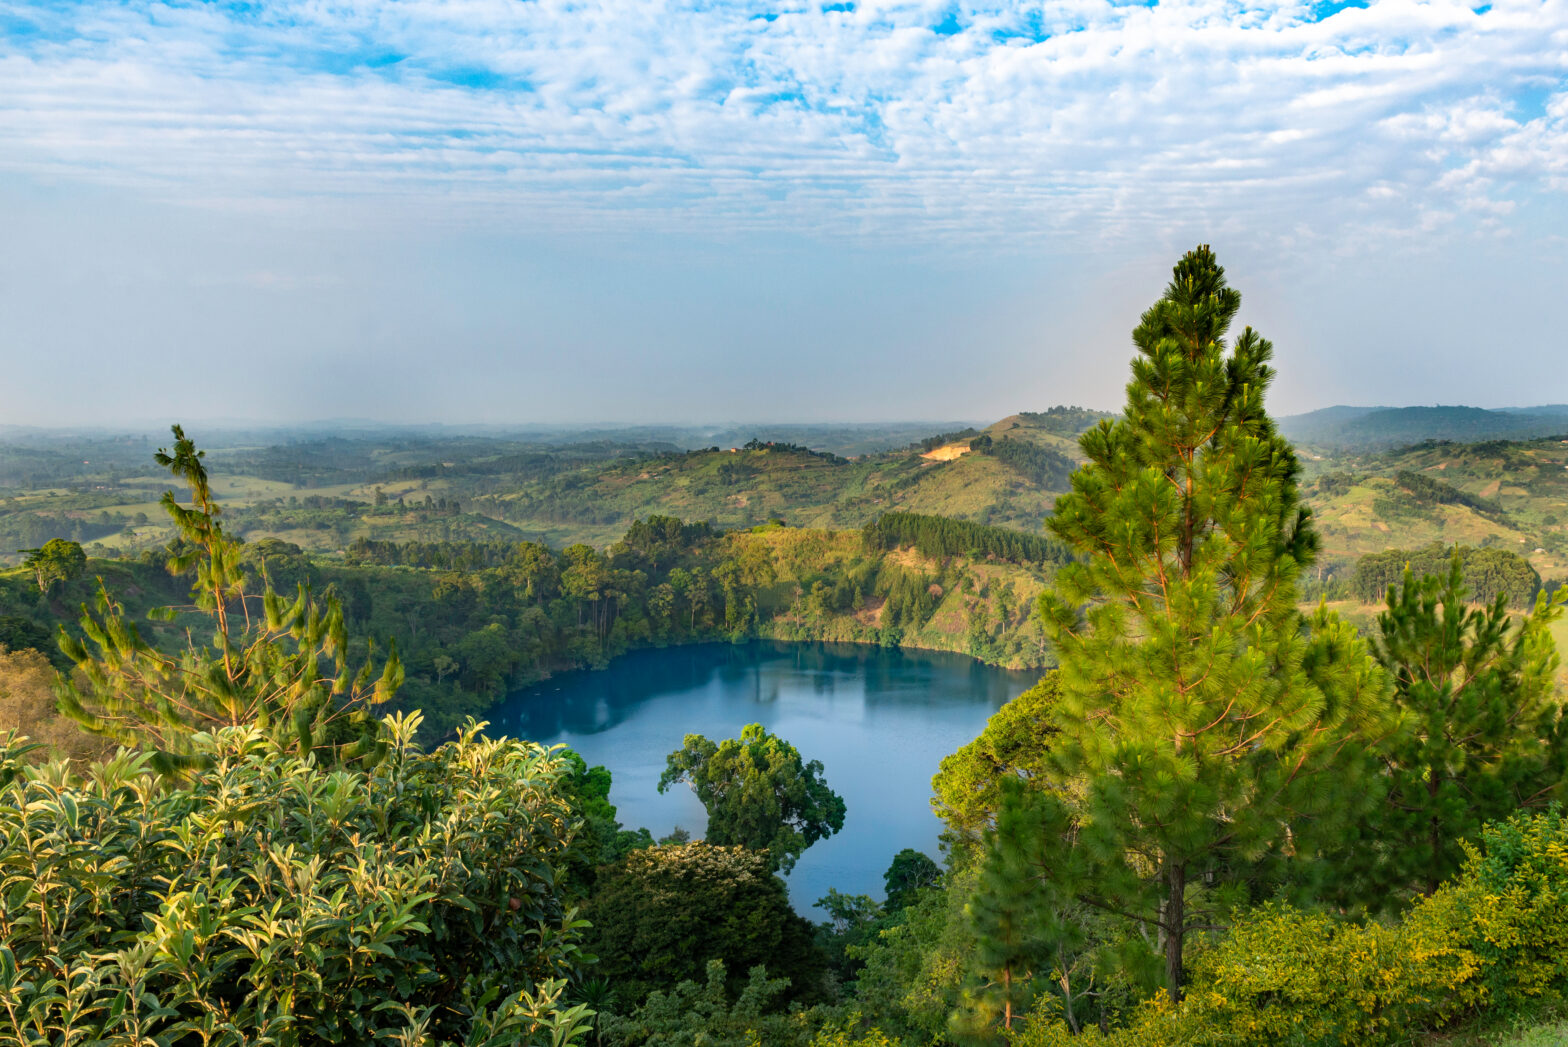 Visit Rwanda: Discover the Land of a Thousand Hills